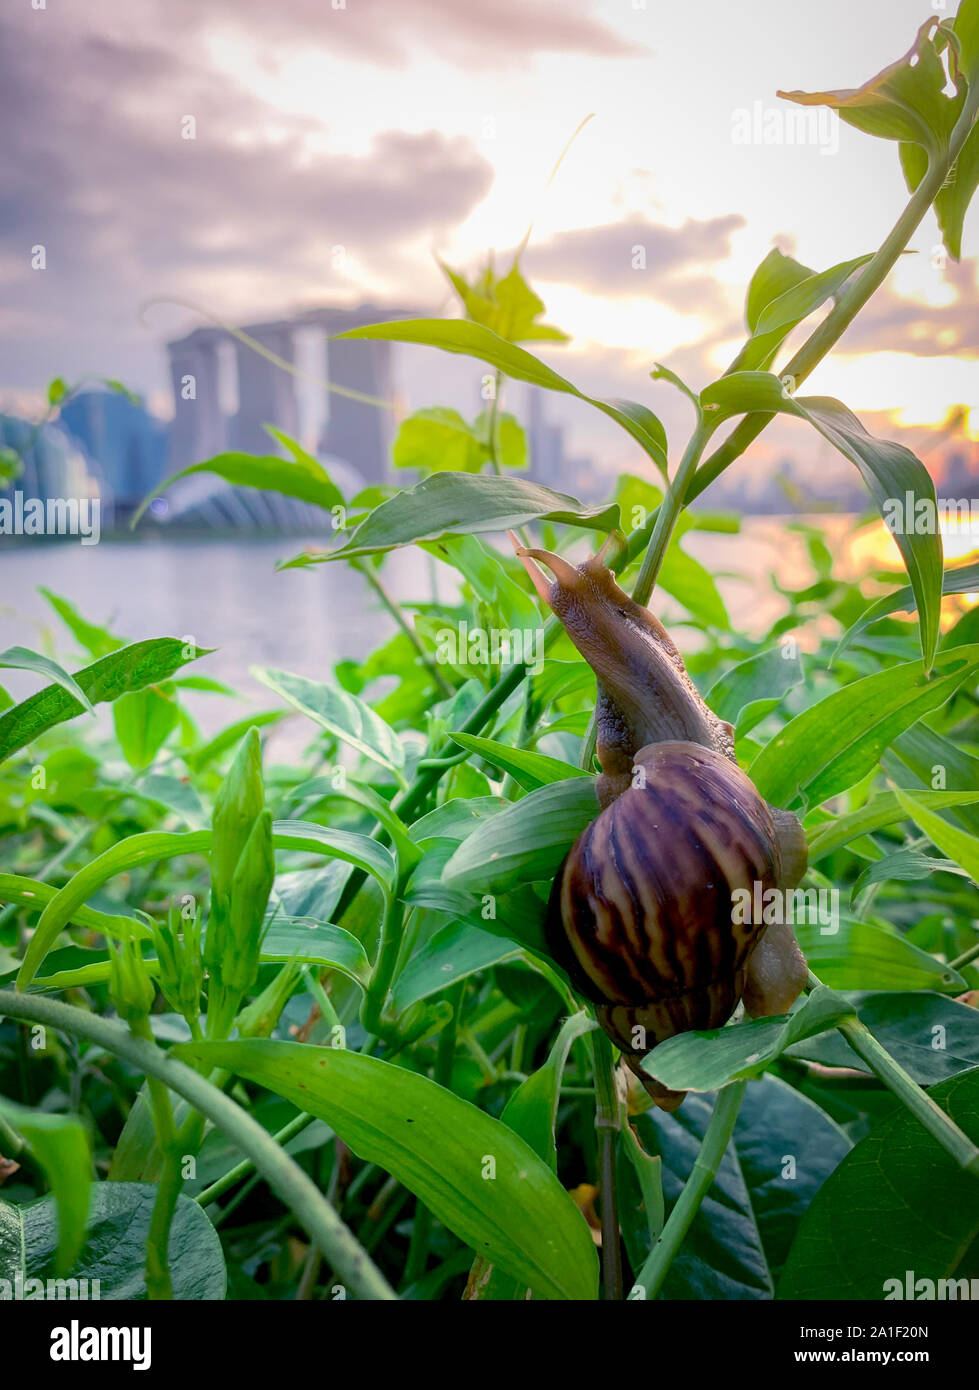 Snail climbing on plant in the evening beside the river opposite landmark building of Singapore at sunset. Slow life concept. Slow travel in Singapore Stock Photo